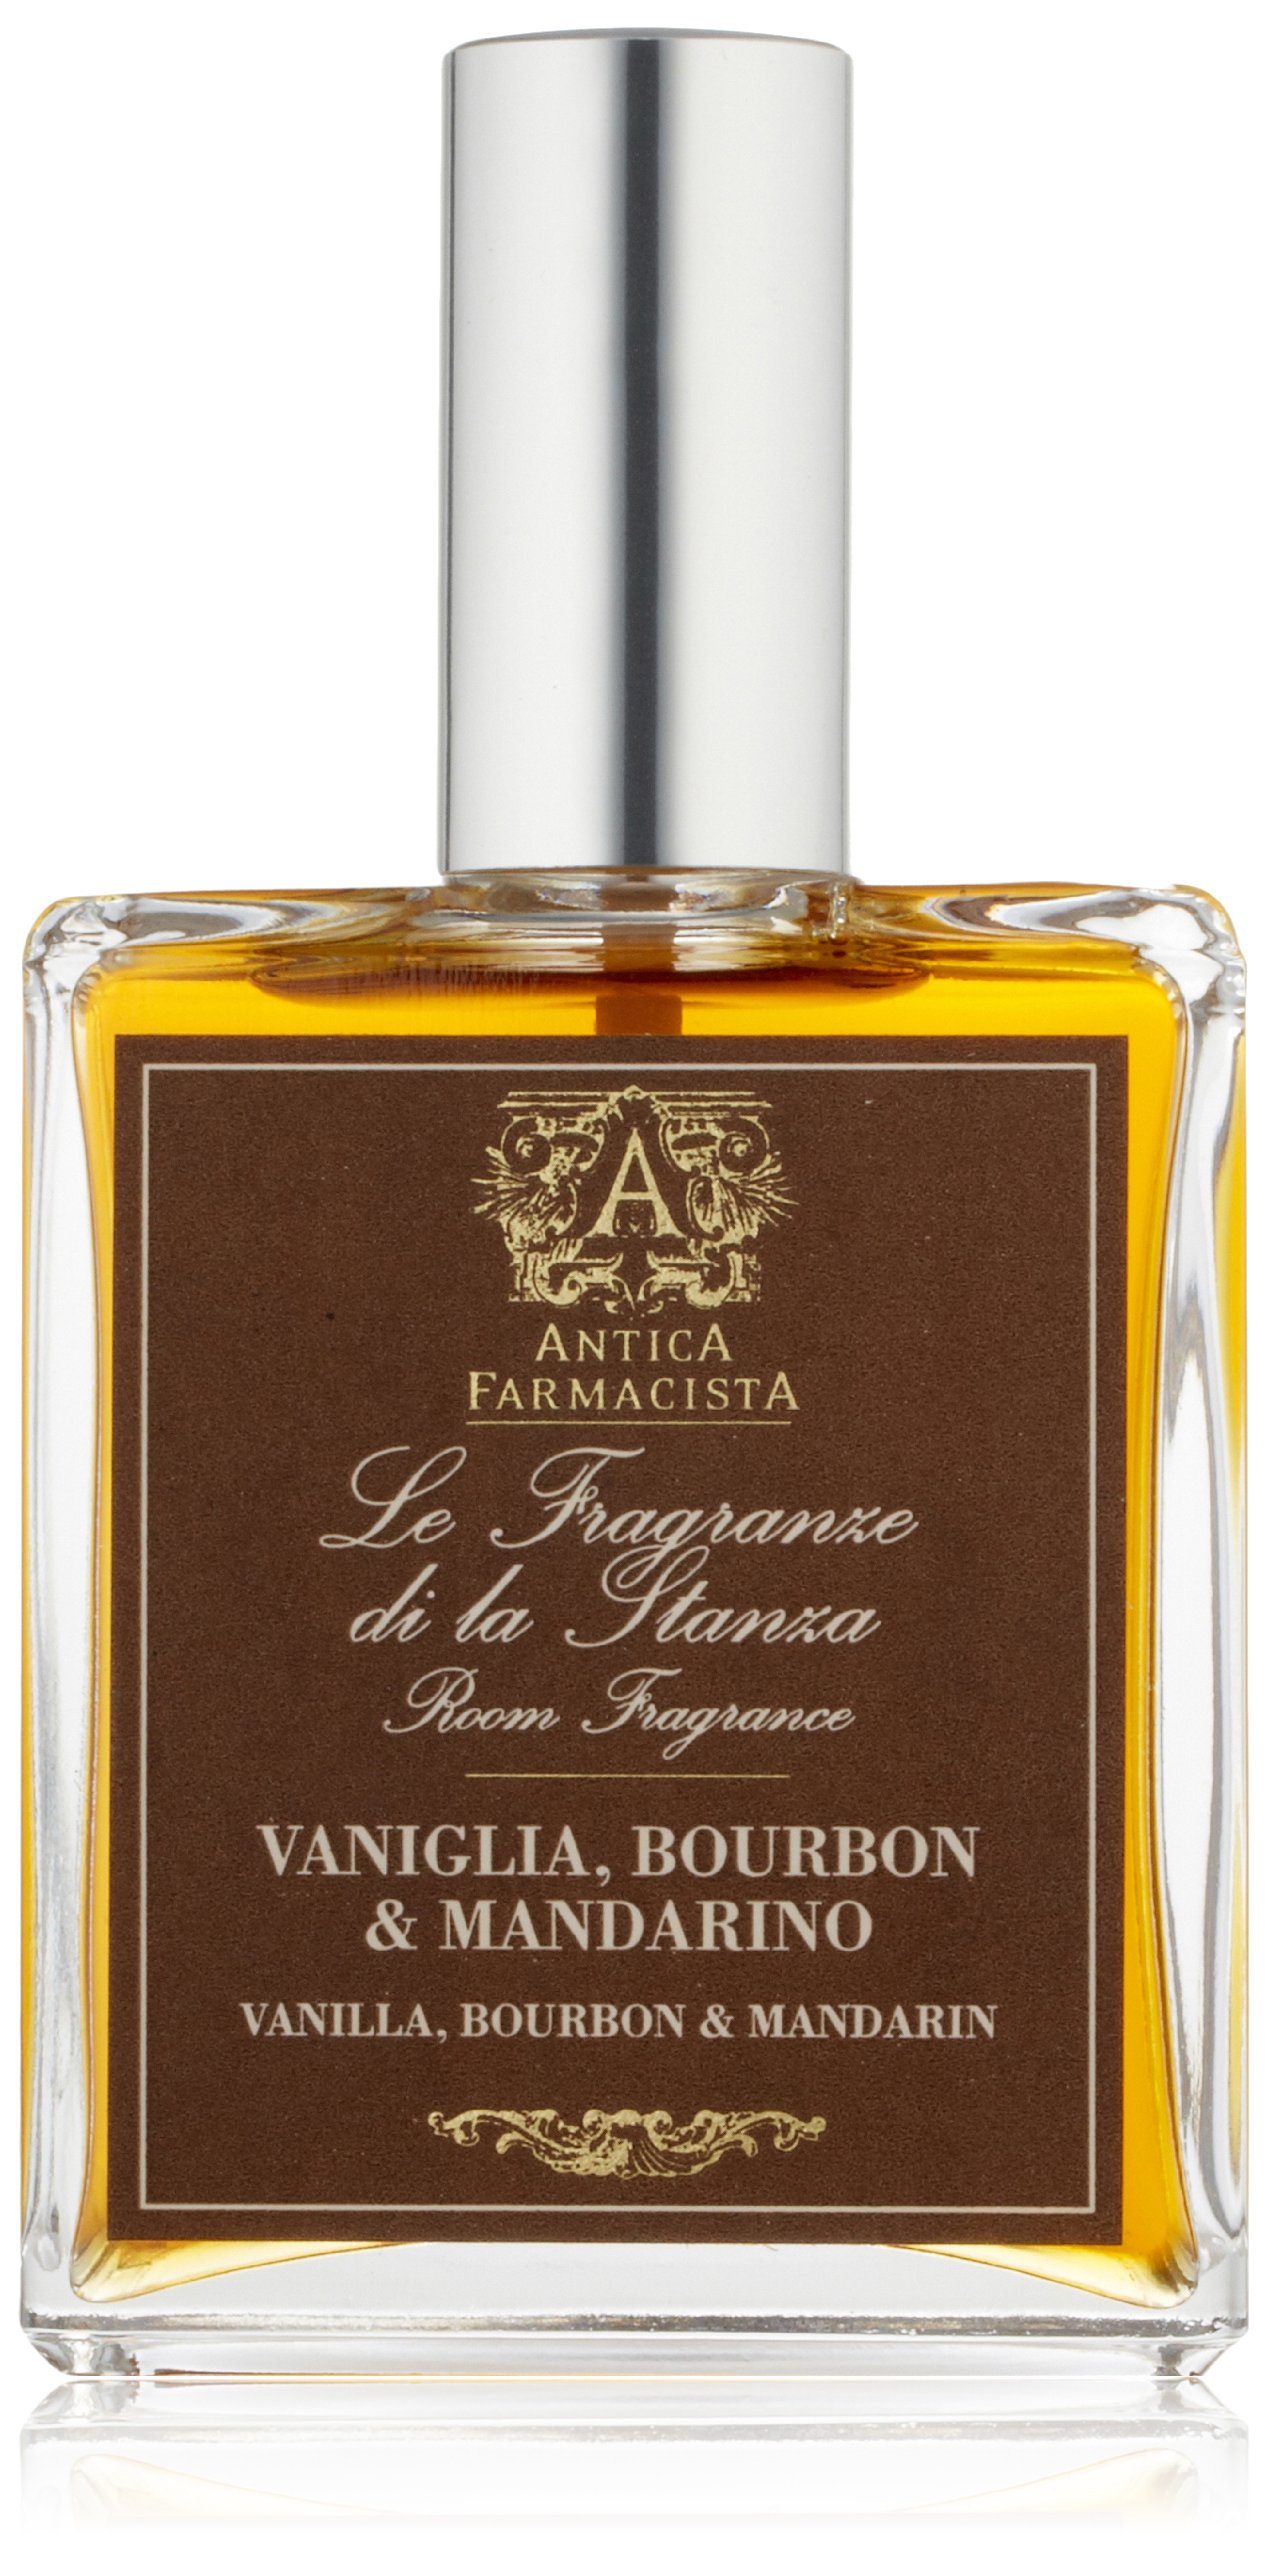 Antica Farmacista Room Fragrance, Vanilla Bourbon & Mandarin, 3.4 Fl Oz